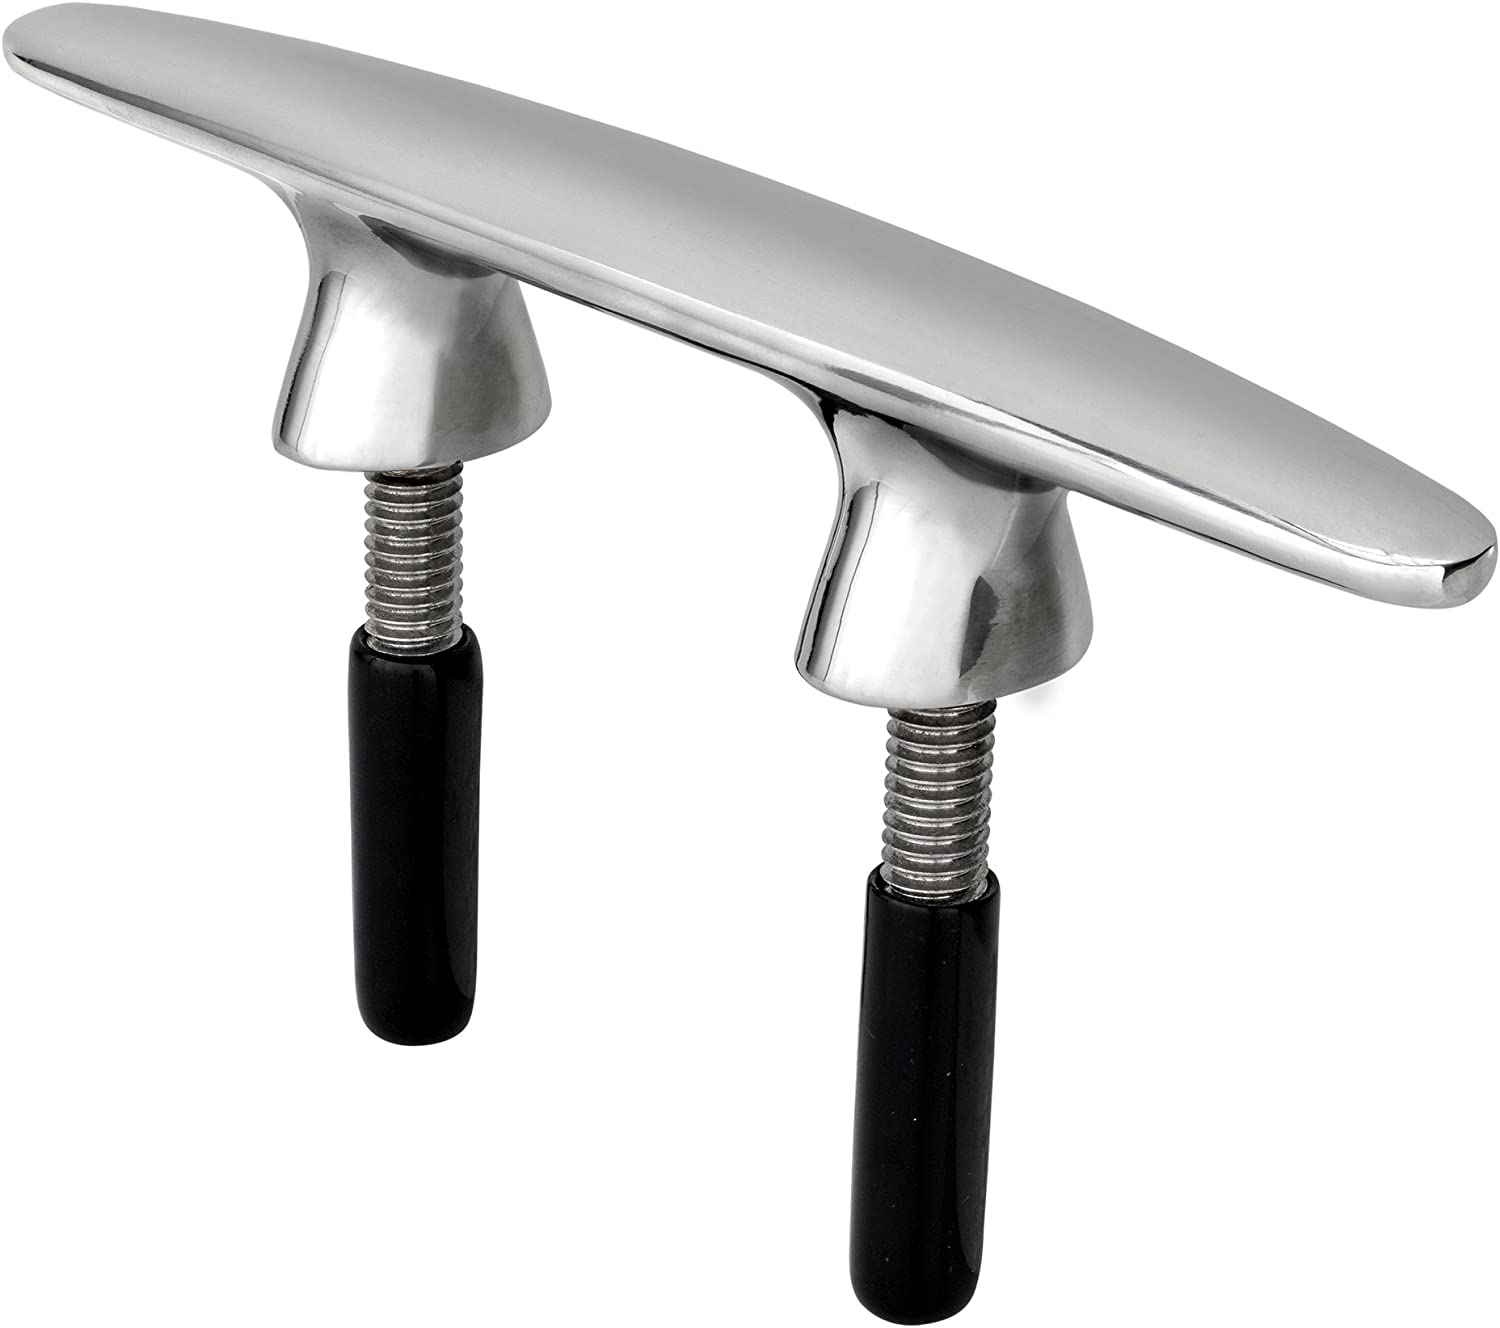 """RecPro Stainless Steel 6"""" Dock Cleat   Marine Hardware   Boat Cleat   with Studs"""